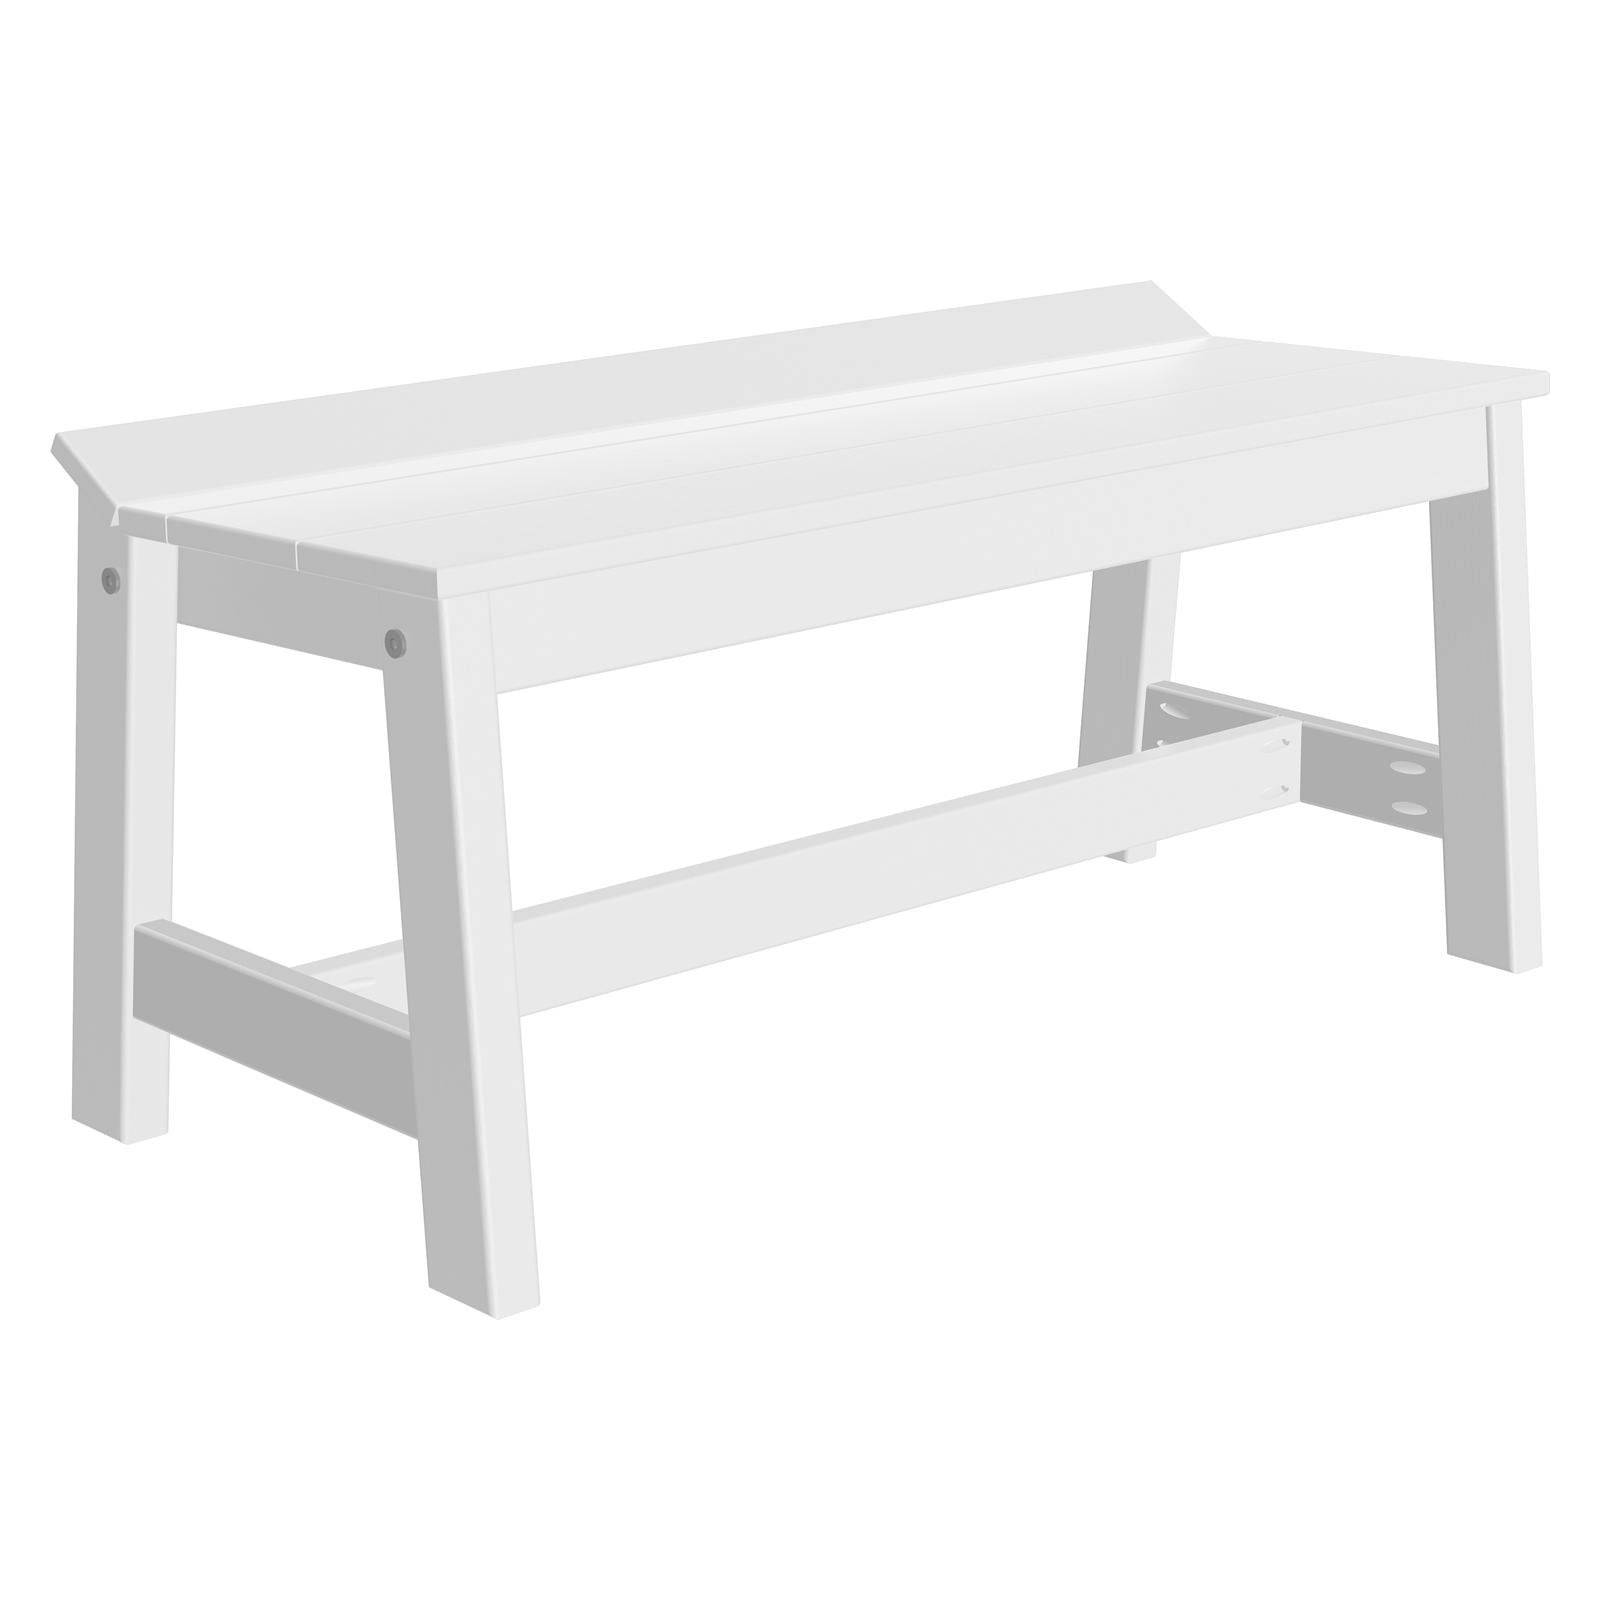 Luxcraft Cafe Dining 41 in Bench